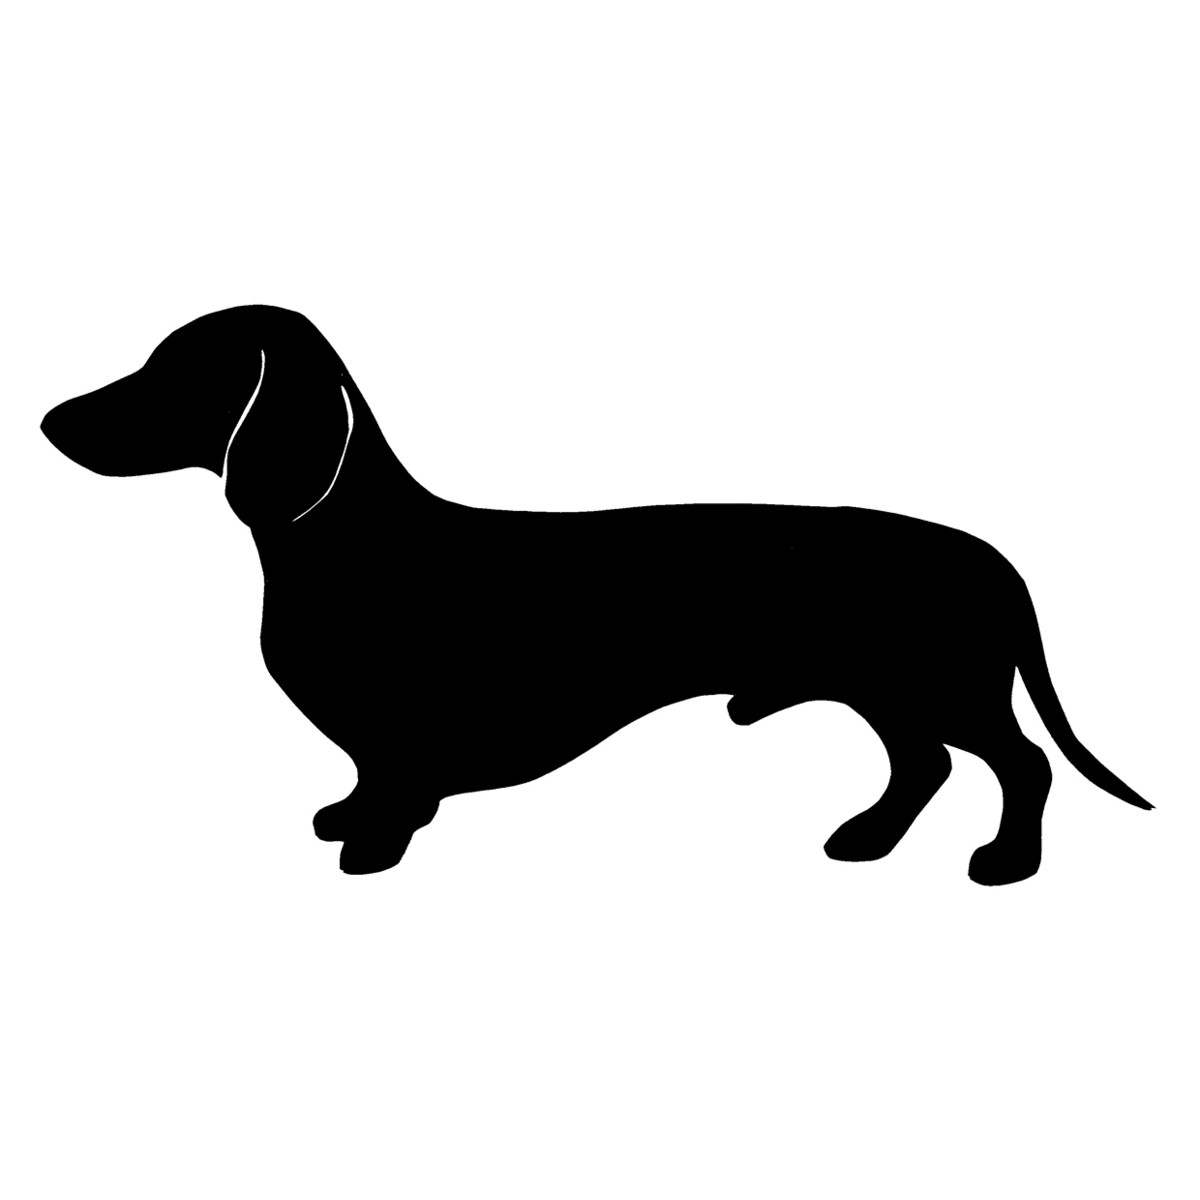 Cute and playful Dachshund pups in Silhouette Vector format for.